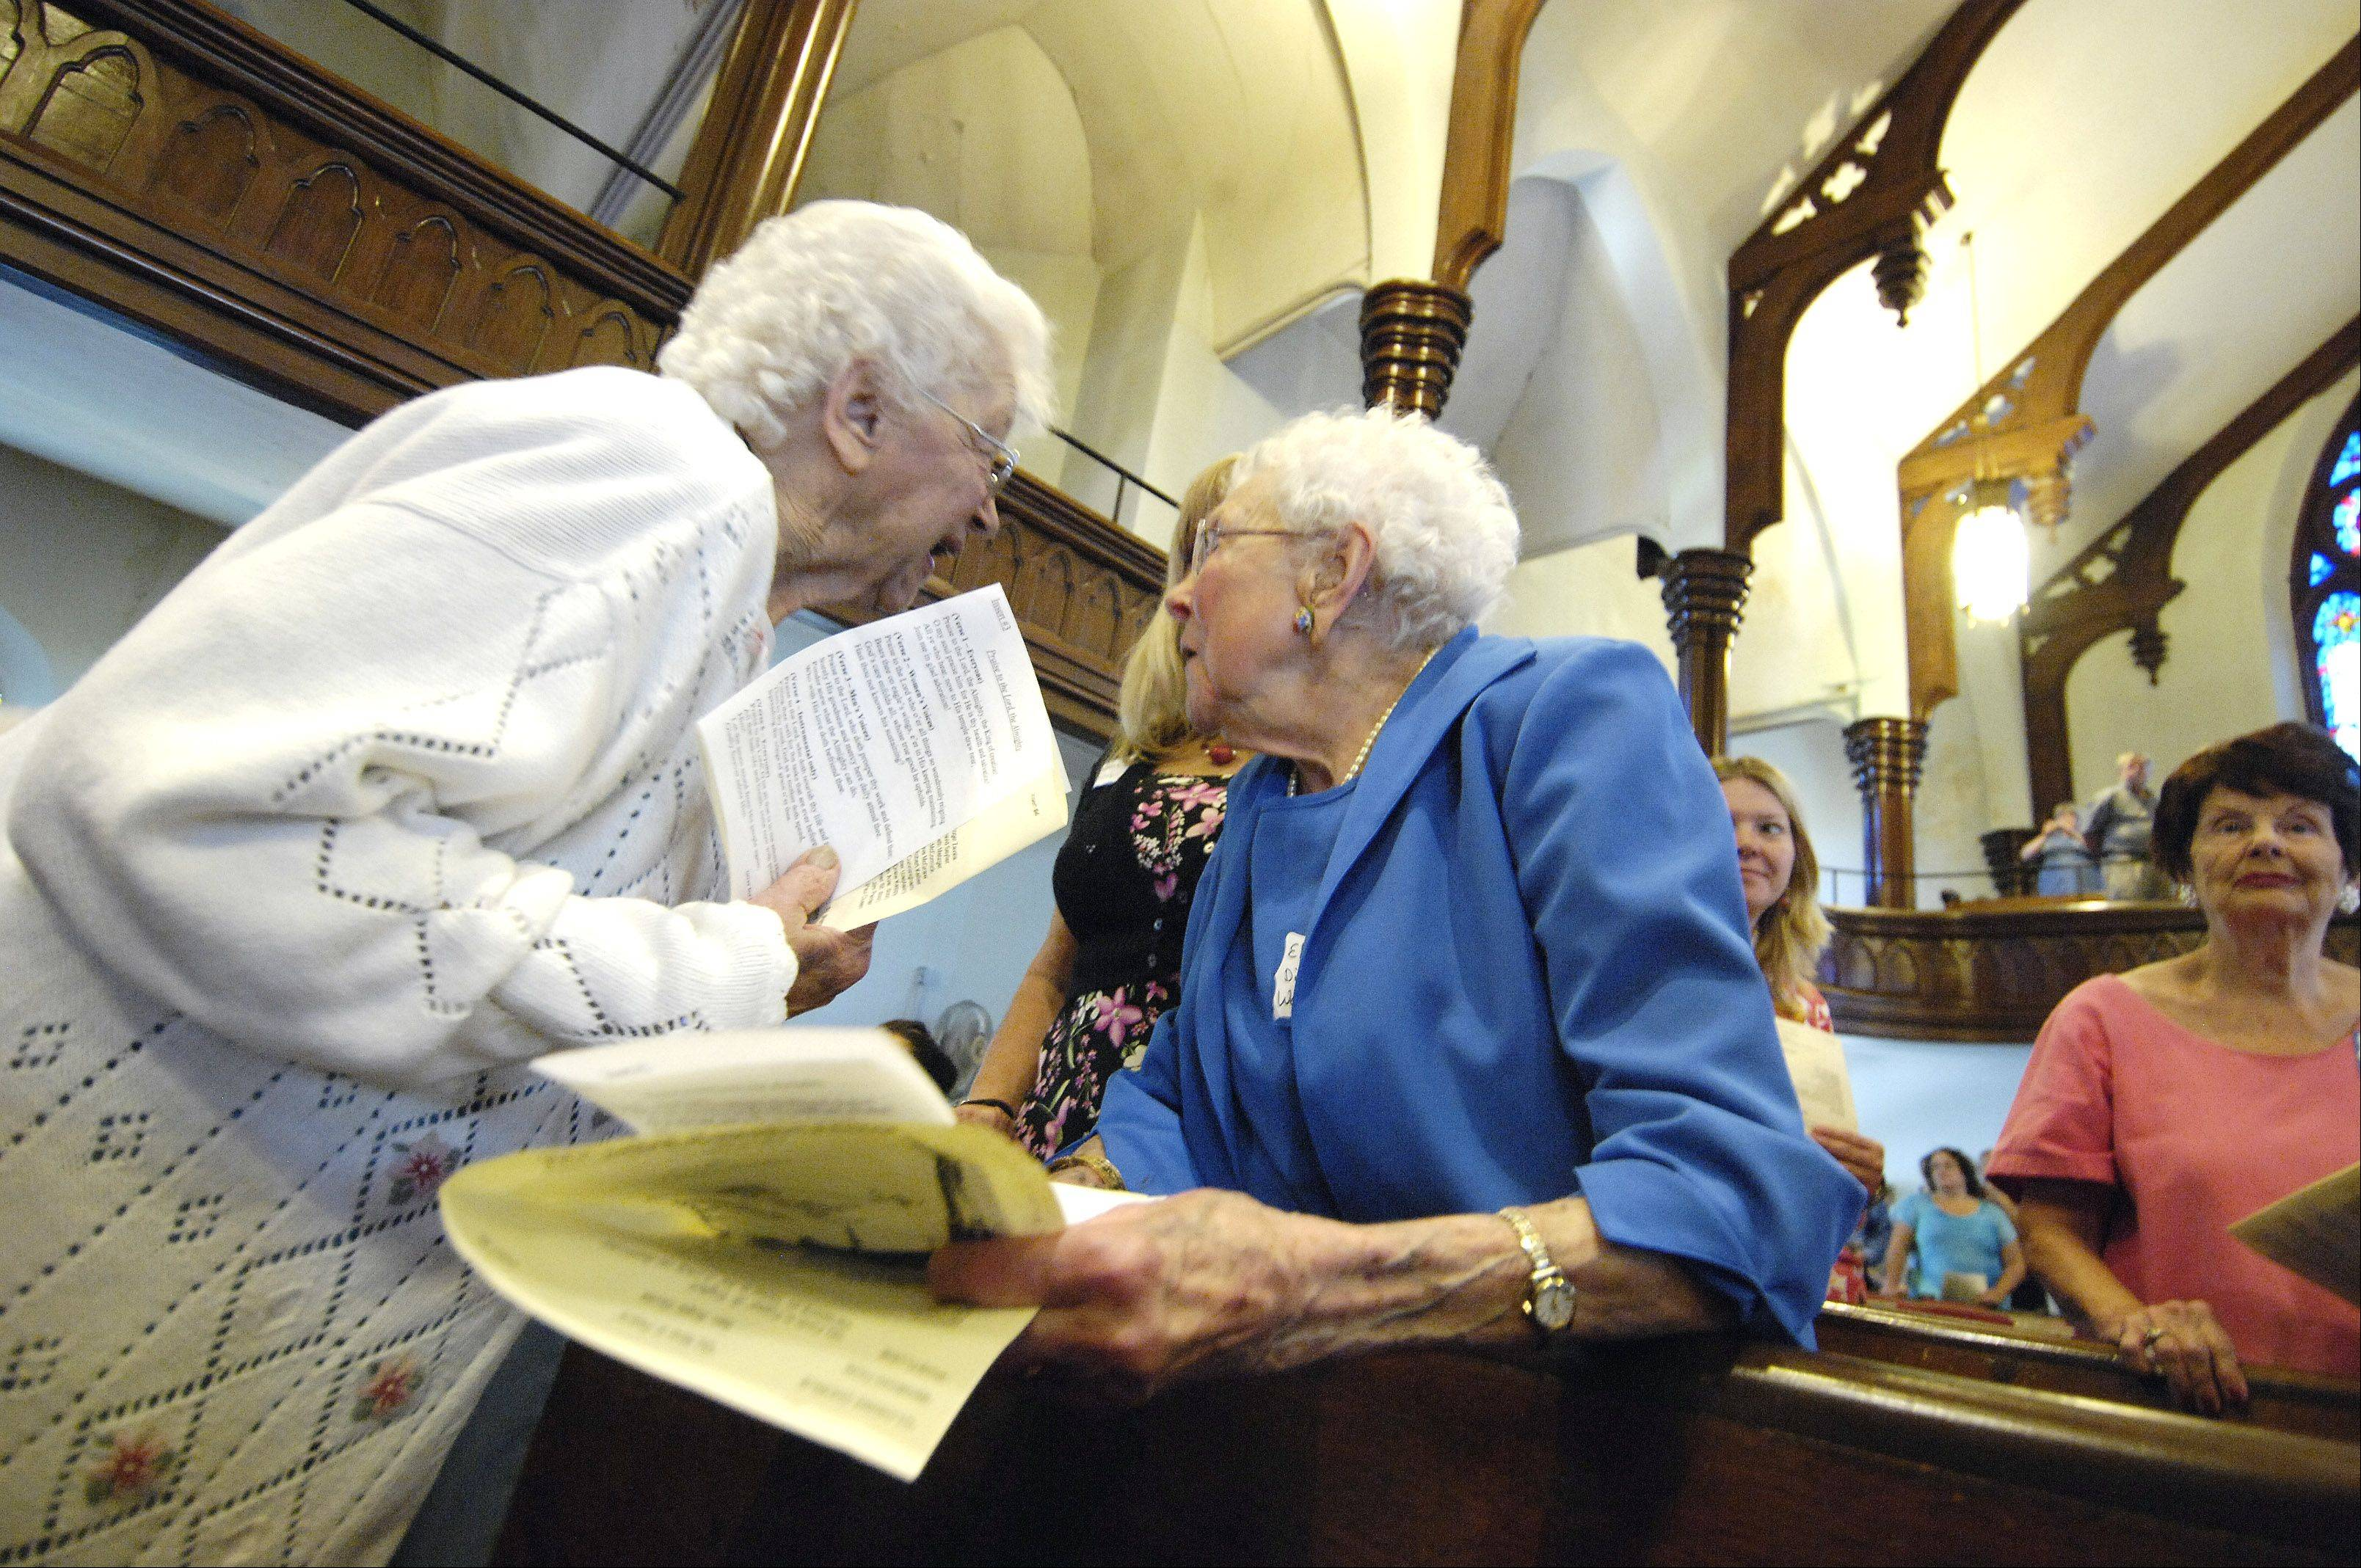 Longtime church members Edith Anderson and Elisie Ruth Dietrich Wagner, 98 years old, reminisce about Aurora's first church, First United Methodist. The church celebrated its final worship service Sunday after 174 years as a congregation.